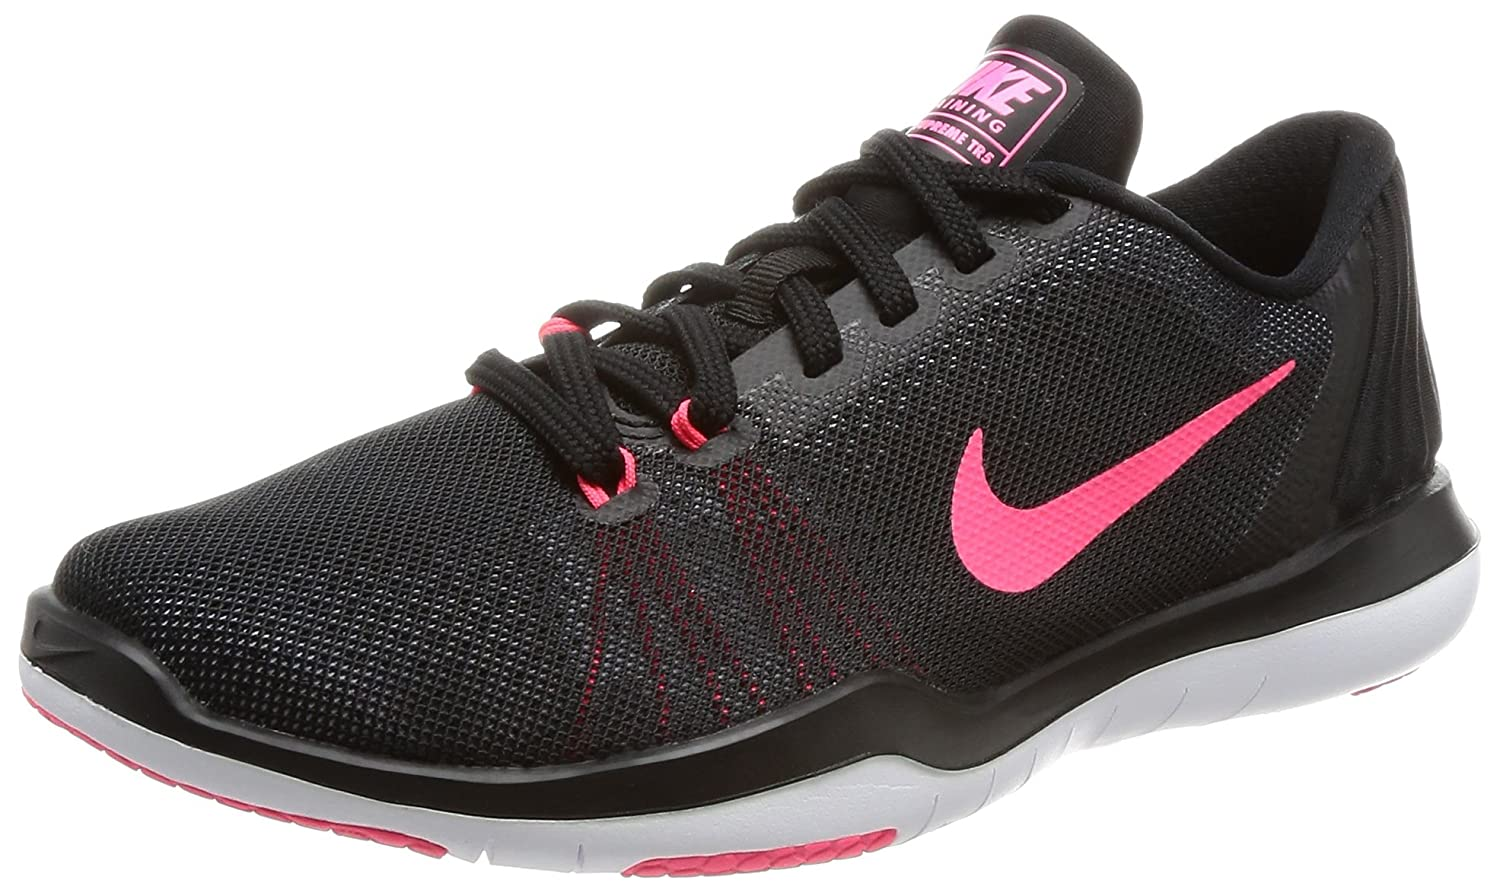 NIKE Women's Flex Supreme TR 5 Cross Training Shoe B01N0T9LR7 7 B(M) US|Black/White/Racer Pink/Dark Grey